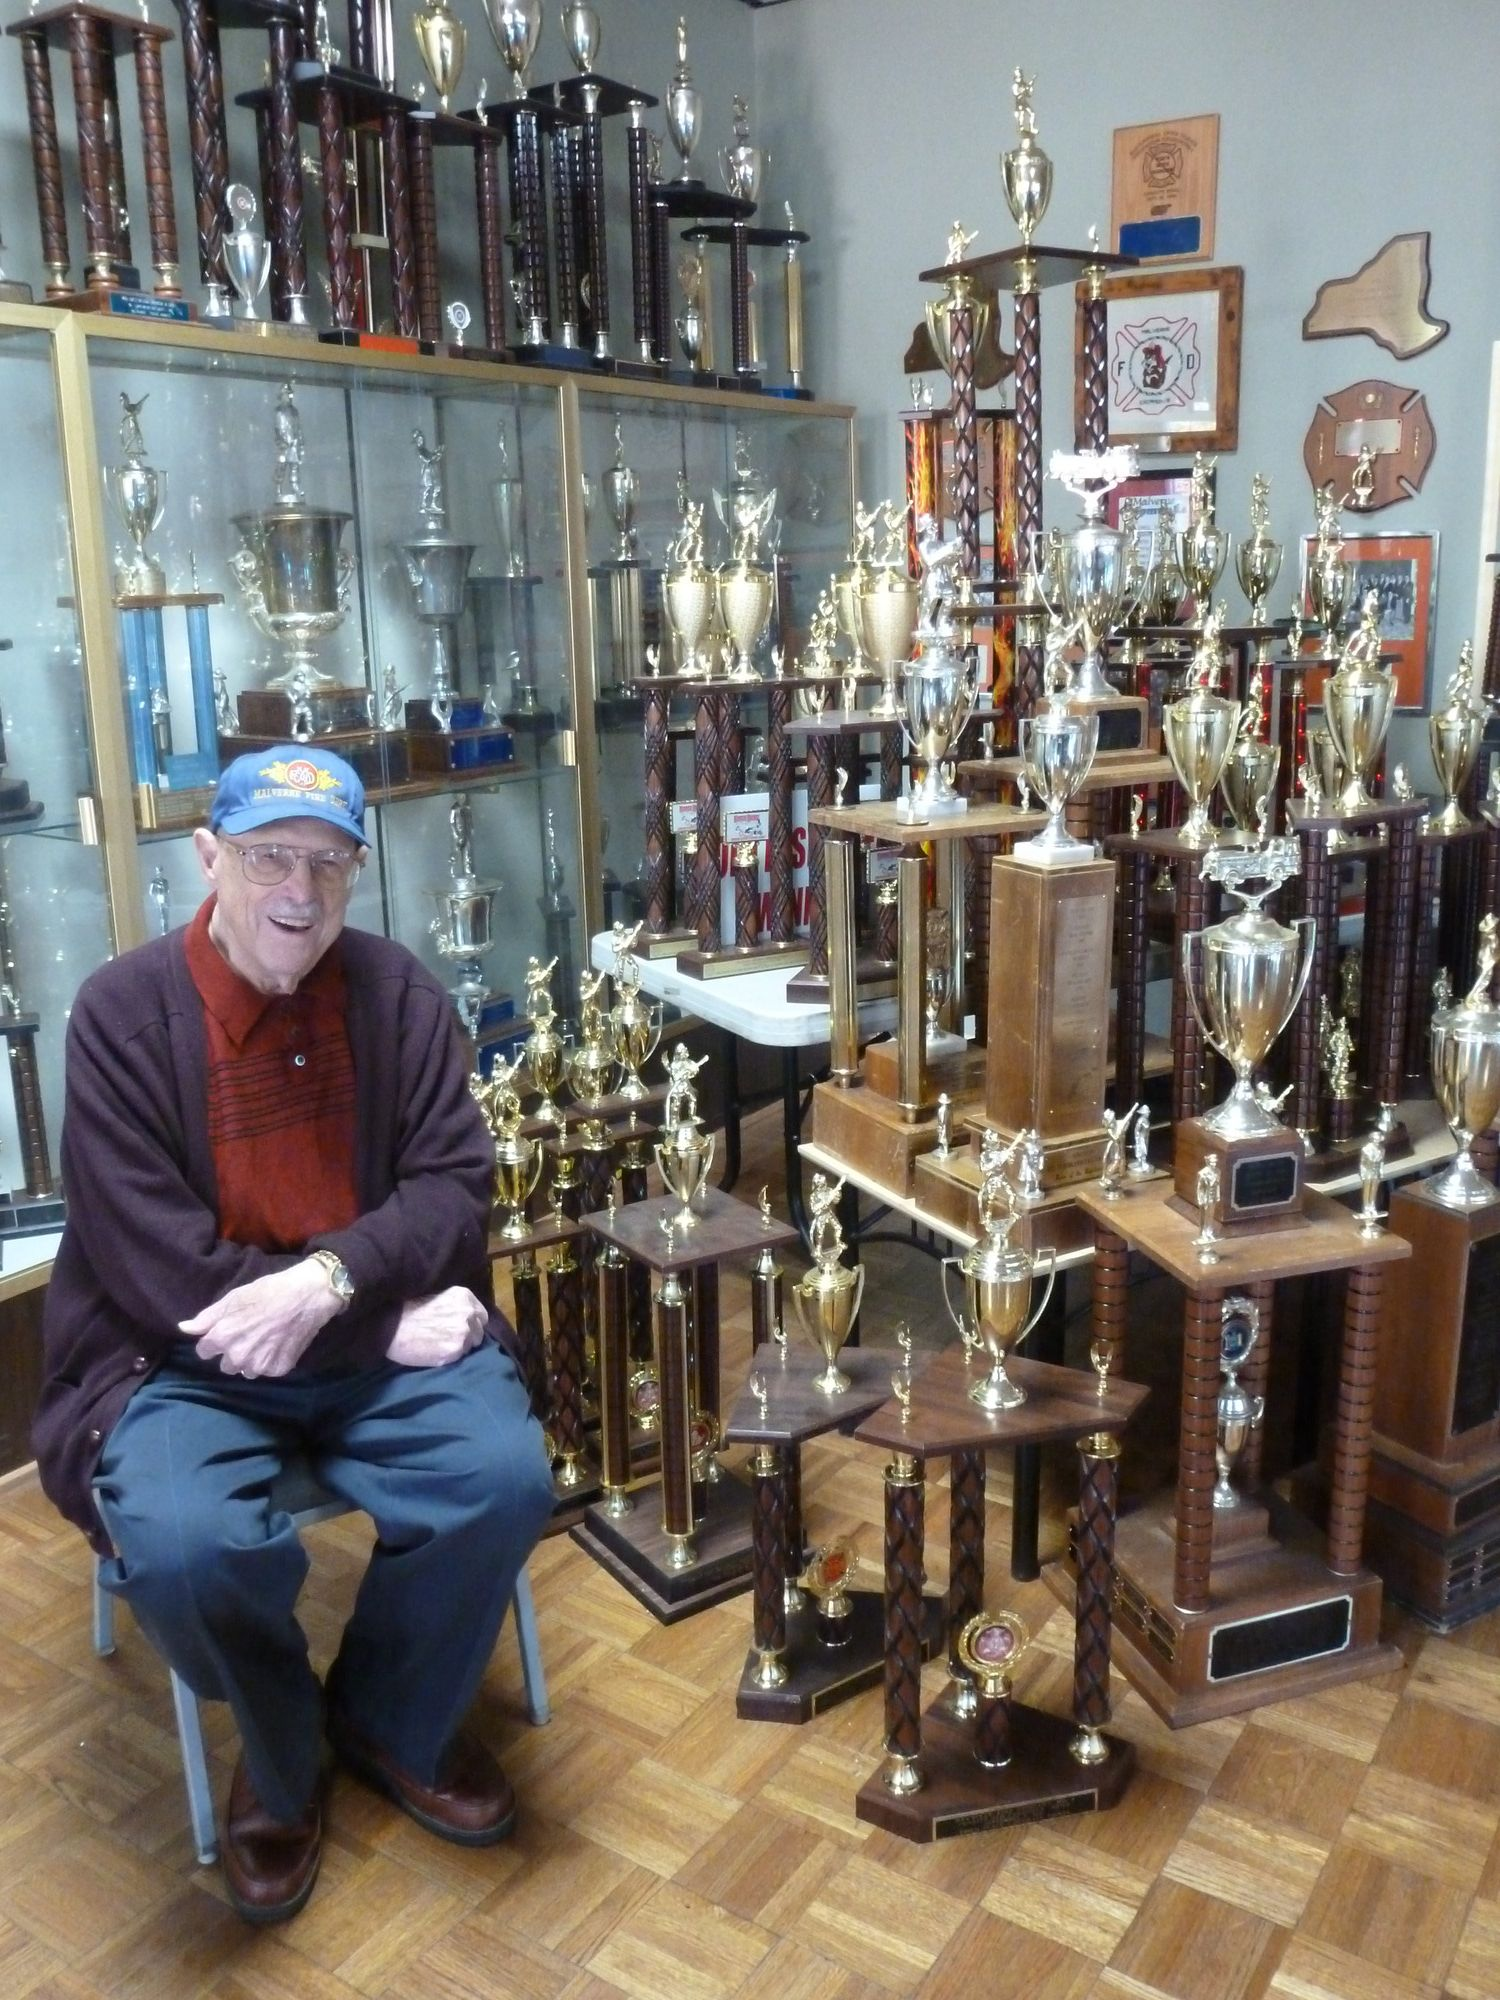 Amedeo dePoto showed off a slew of trophies that he earned with the Chipmunks drill team, which he led for 20 years.